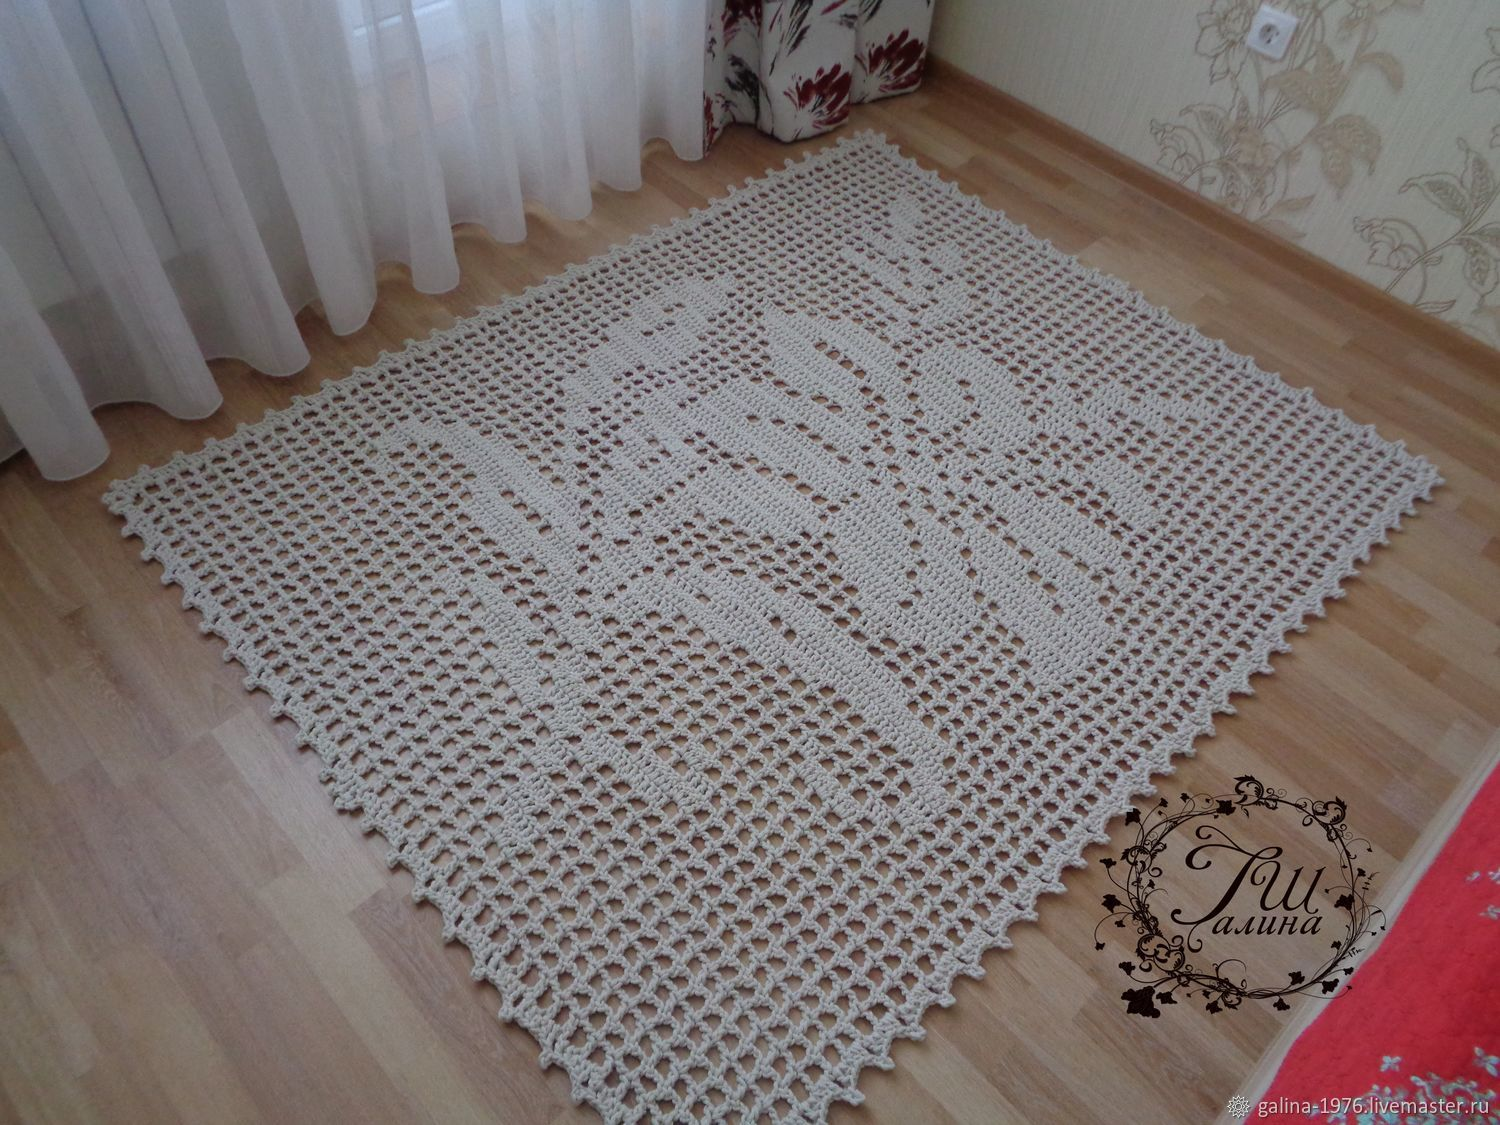 Cotton knitted carpet 'Modesty', Carpets, Voronezh,  Фото №1